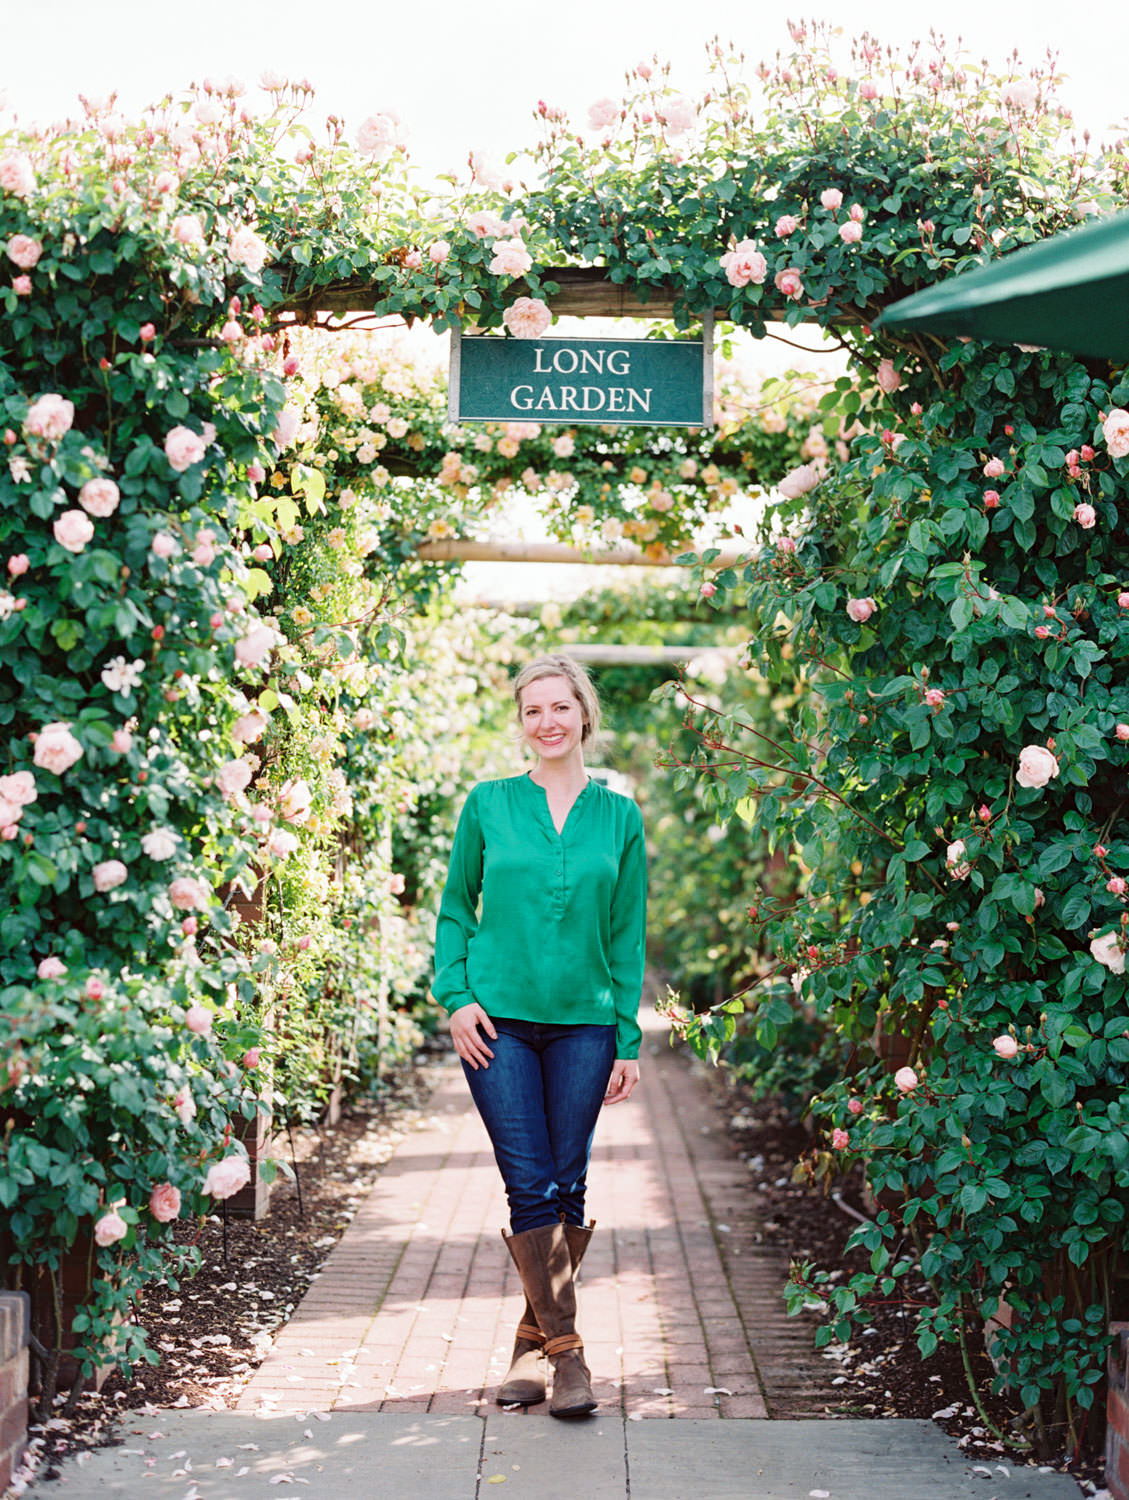 Long garden at David Austin Roses in England. Film by Cavin Elizabeth on the Flutter Mag Retreat